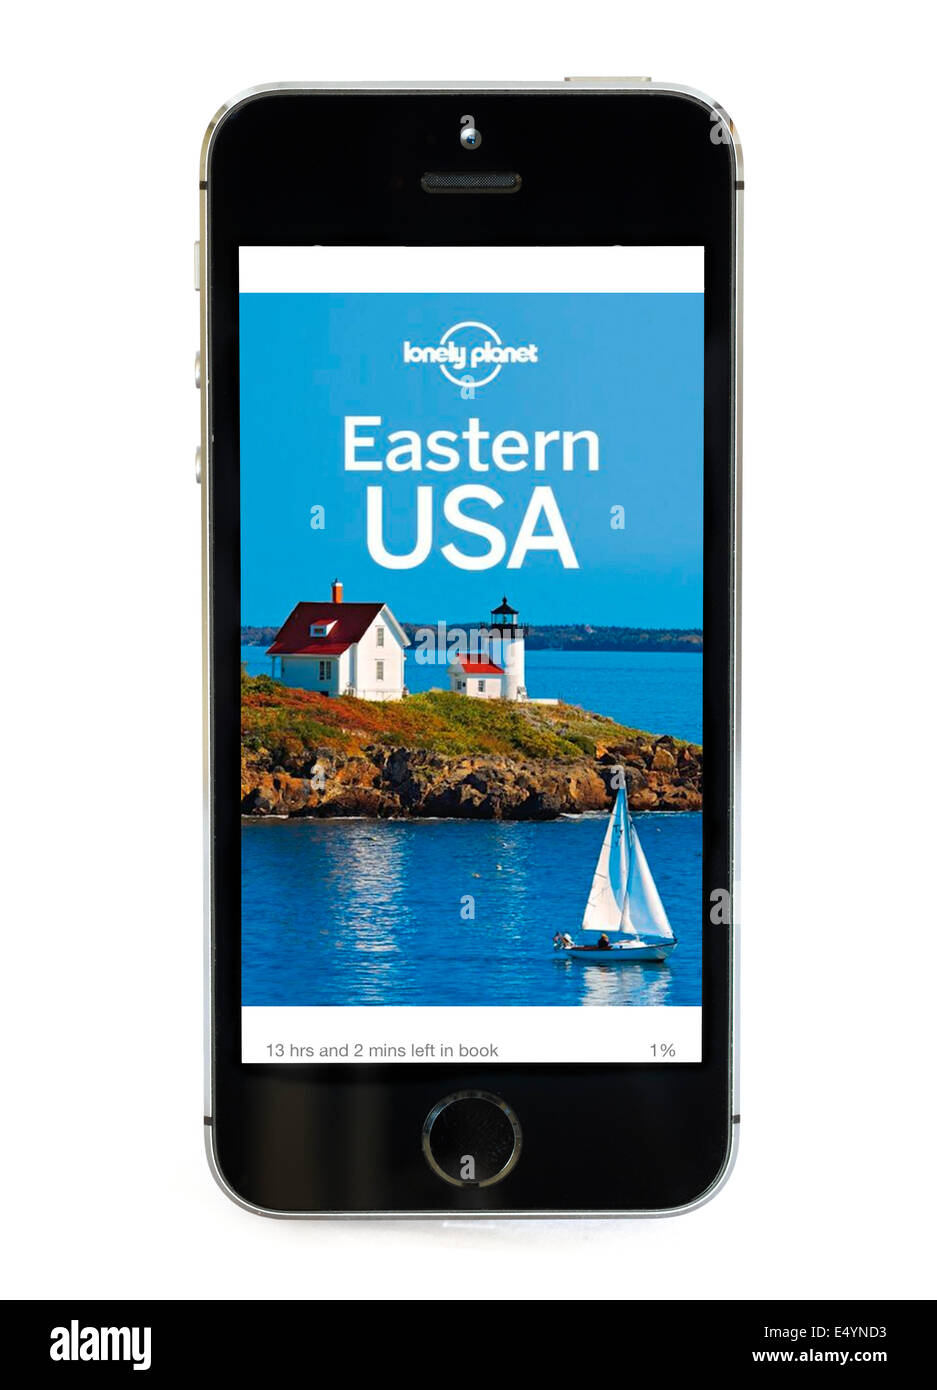 Travel Guide on the Eastern USA by Lonely Planet displayed on Apple iPhone Kindle app. - Stock Image